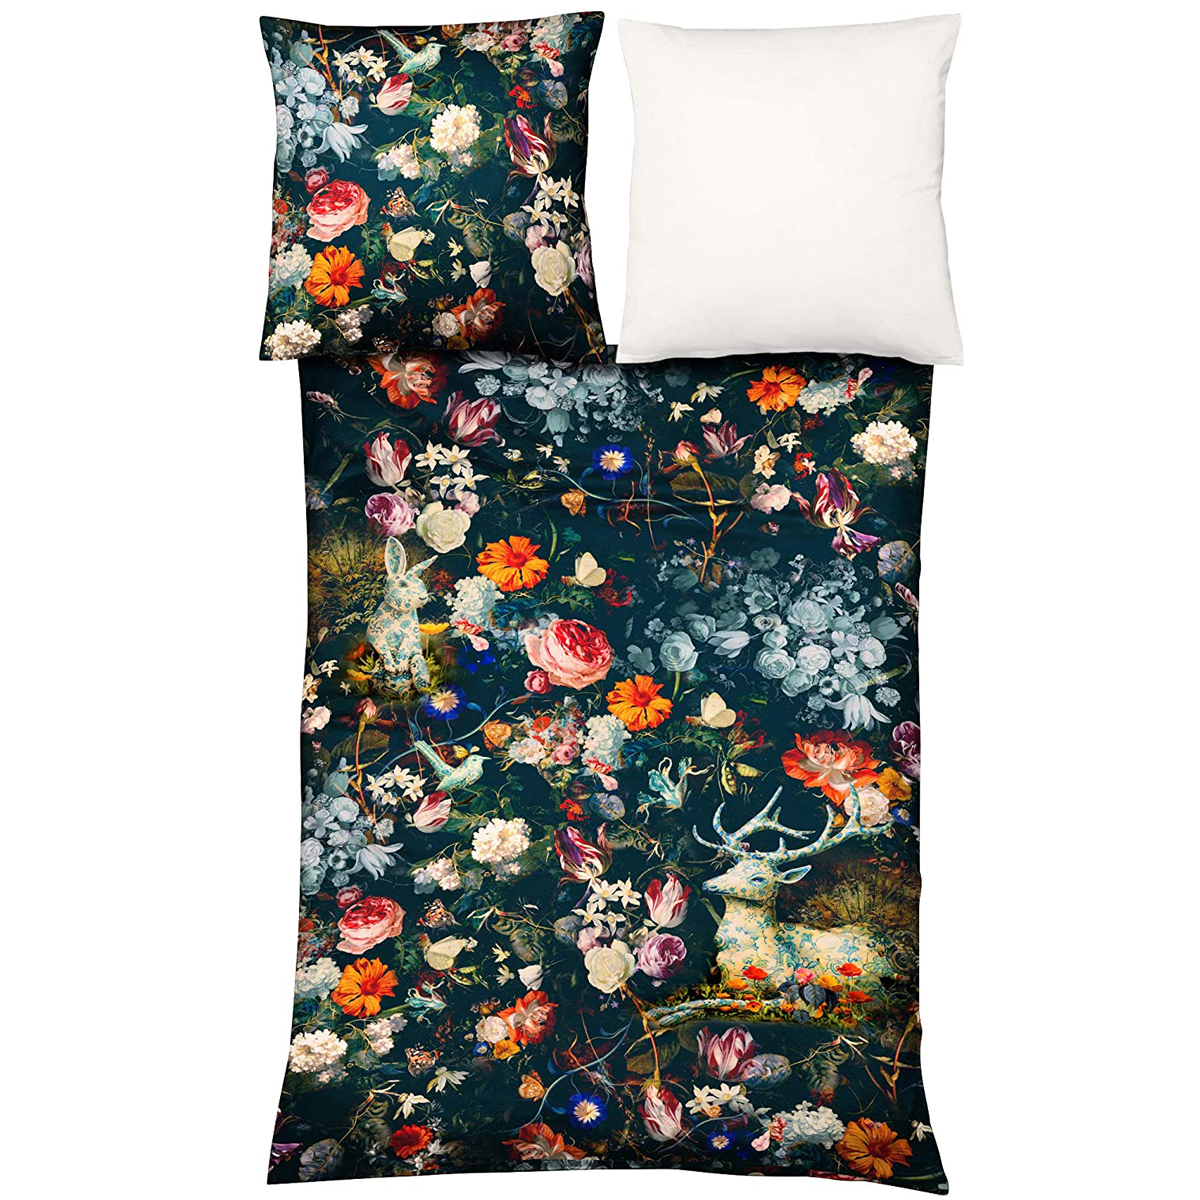 Mako Satin Bettwäsche Fleuresse Bed Art S Fantasy Flowers Glory Betten Seifert